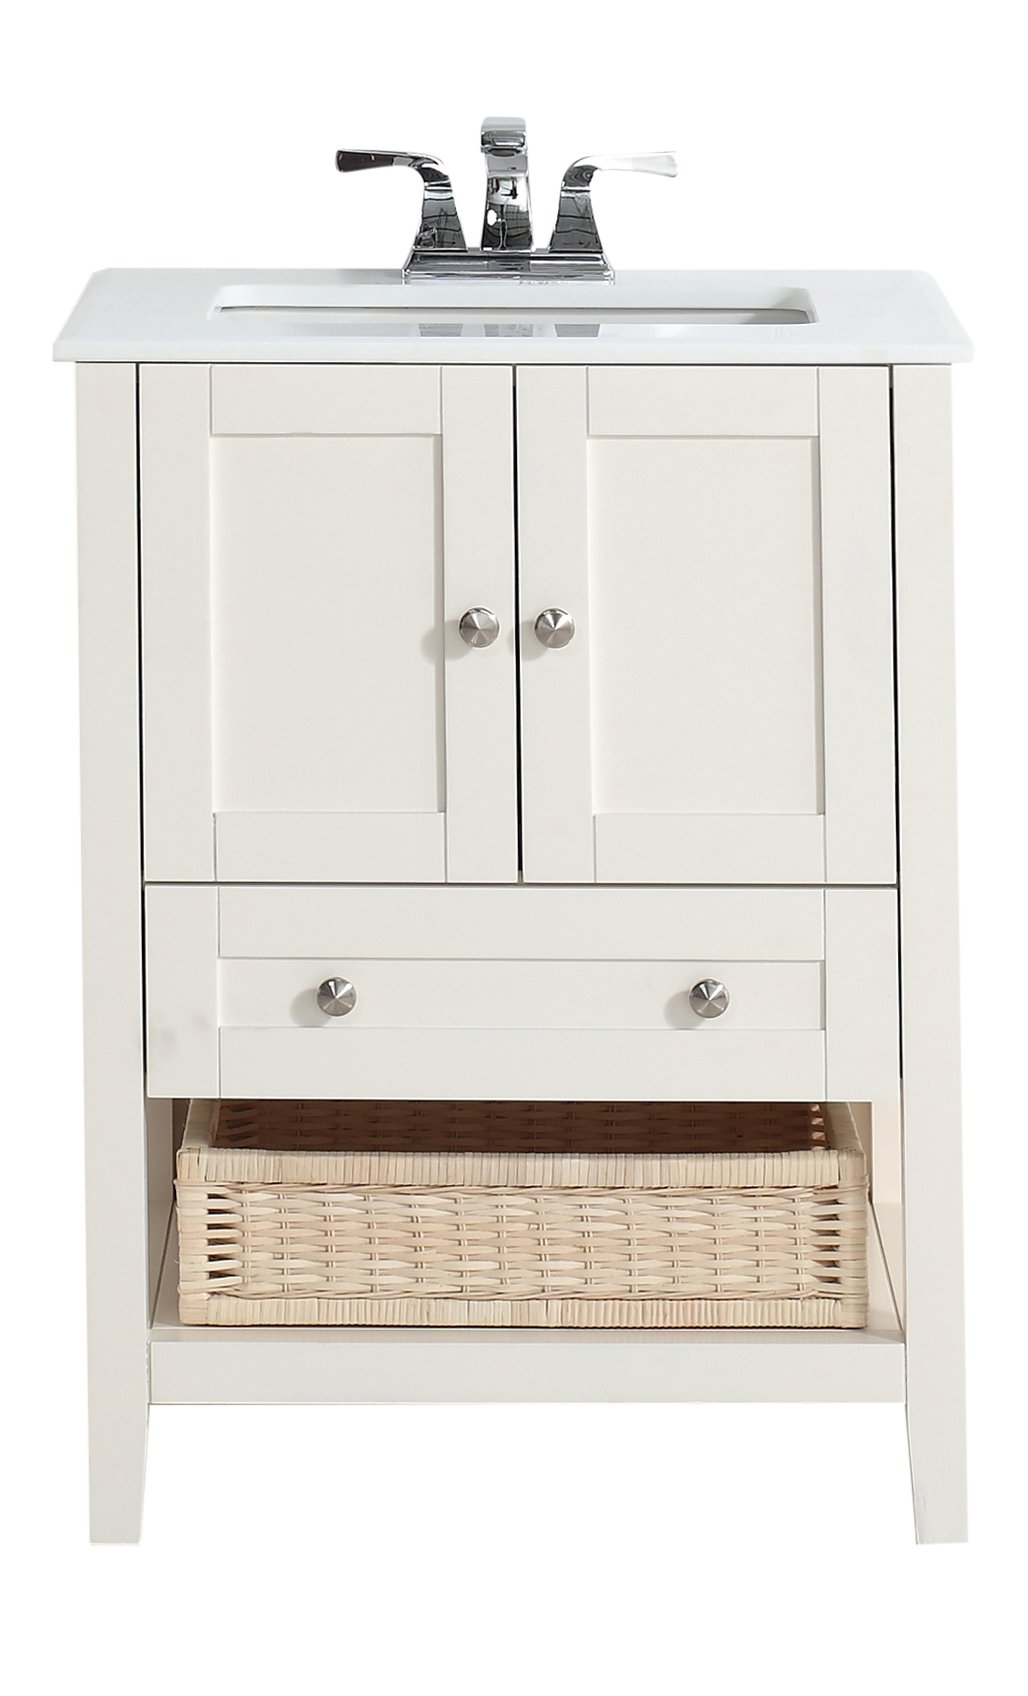 "Simpli Home 4AXCVCCW-24 Cape Cod 24 inch Contemporary Bath Vanity in Soft White with White Engineered Quartz Marble Top - Single sink bathroom vanity with two doors, one bottom drawer and open storage area with basket, hardwood frame and legs Vanity color: Off White with Brushed Nickel knobs Overall Vanity Size with Top: 25"" w x 21.5"" d x 34.5"" h - bathroom-vanities, bathroom-fixtures-hardware, bathroom - 61jOdjbTztL -"